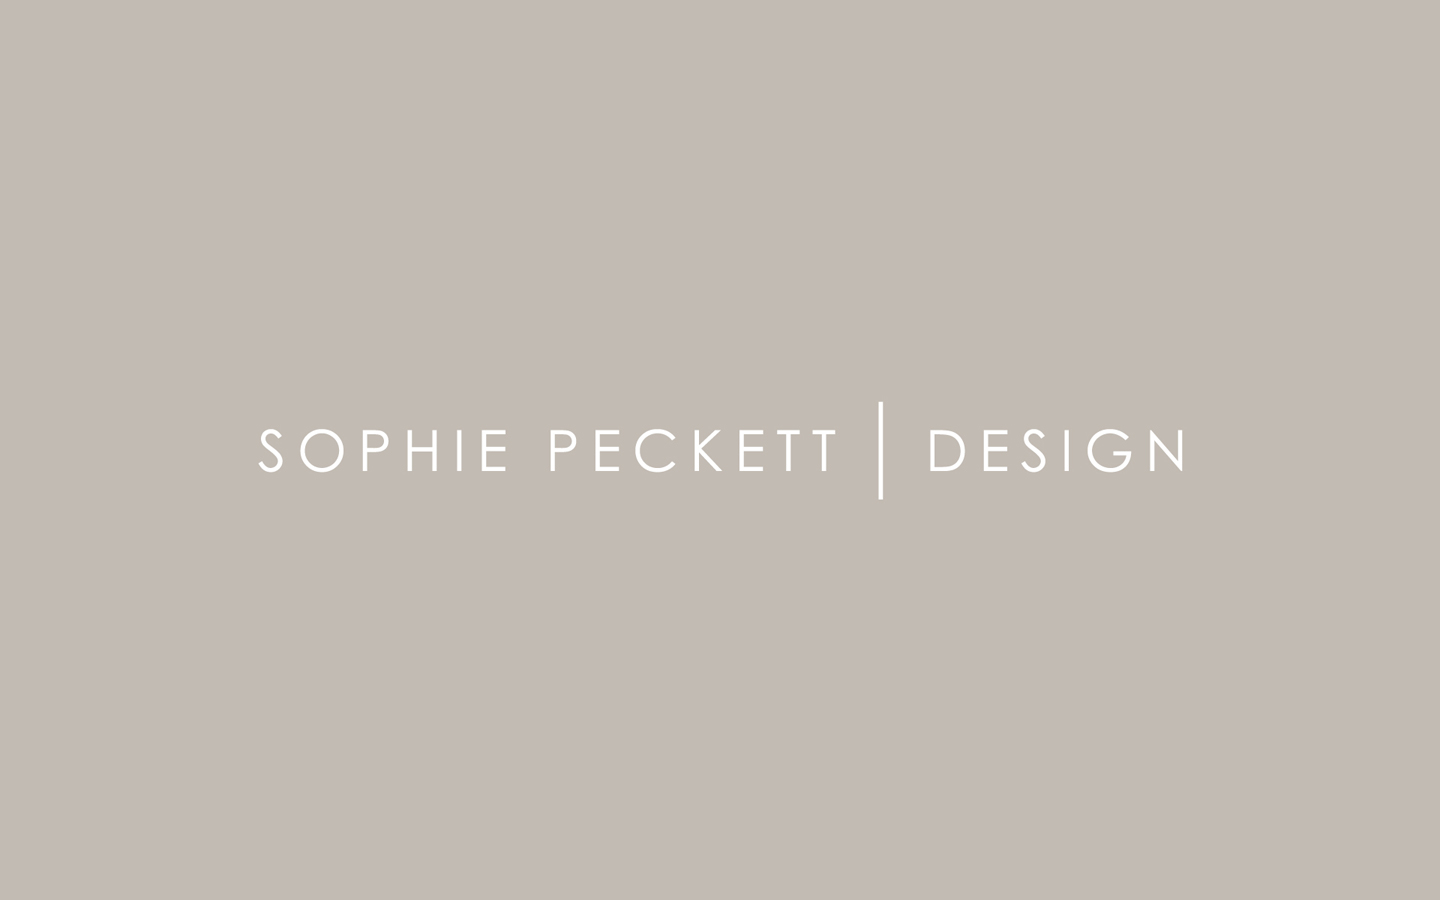 Sophie Peckett Logo Design in Brand Colours